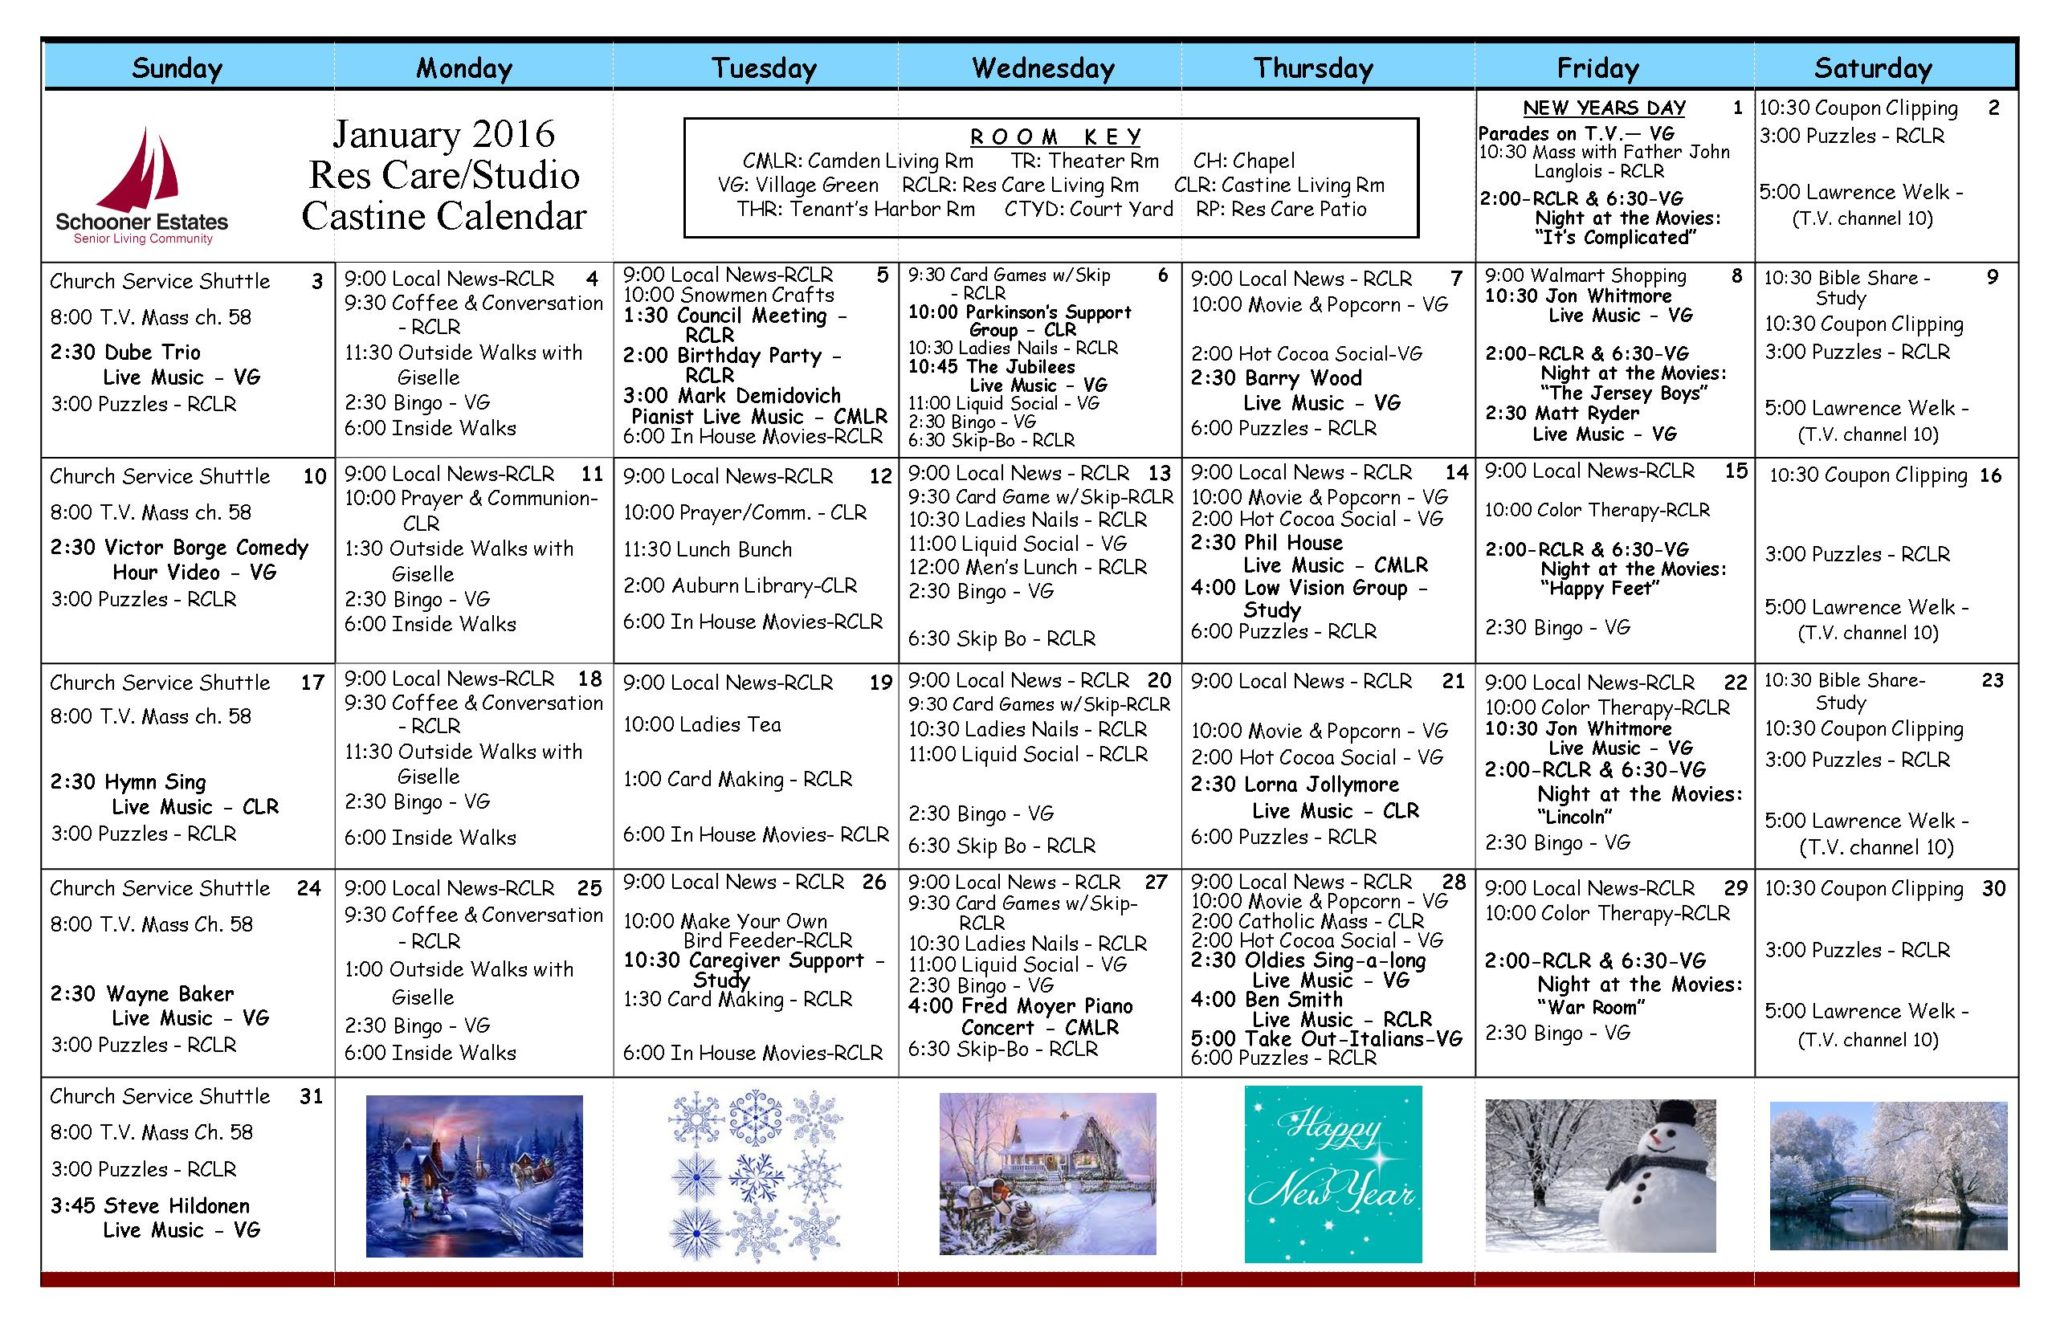 January 2016 Assisted Living and Residential Care Activity Calendar